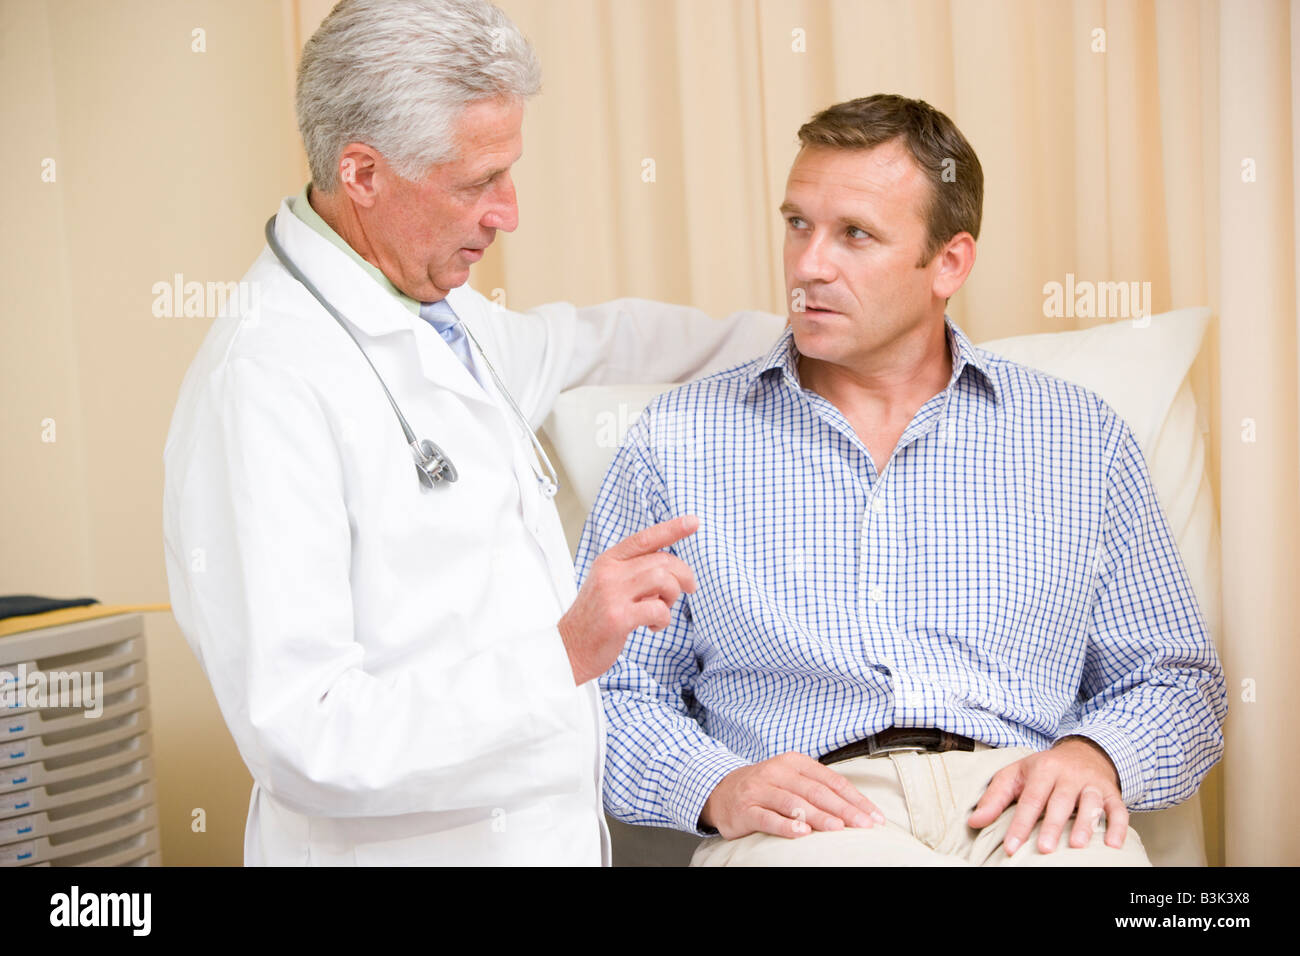 Doctor giving man checkup in exam room Stock Photo